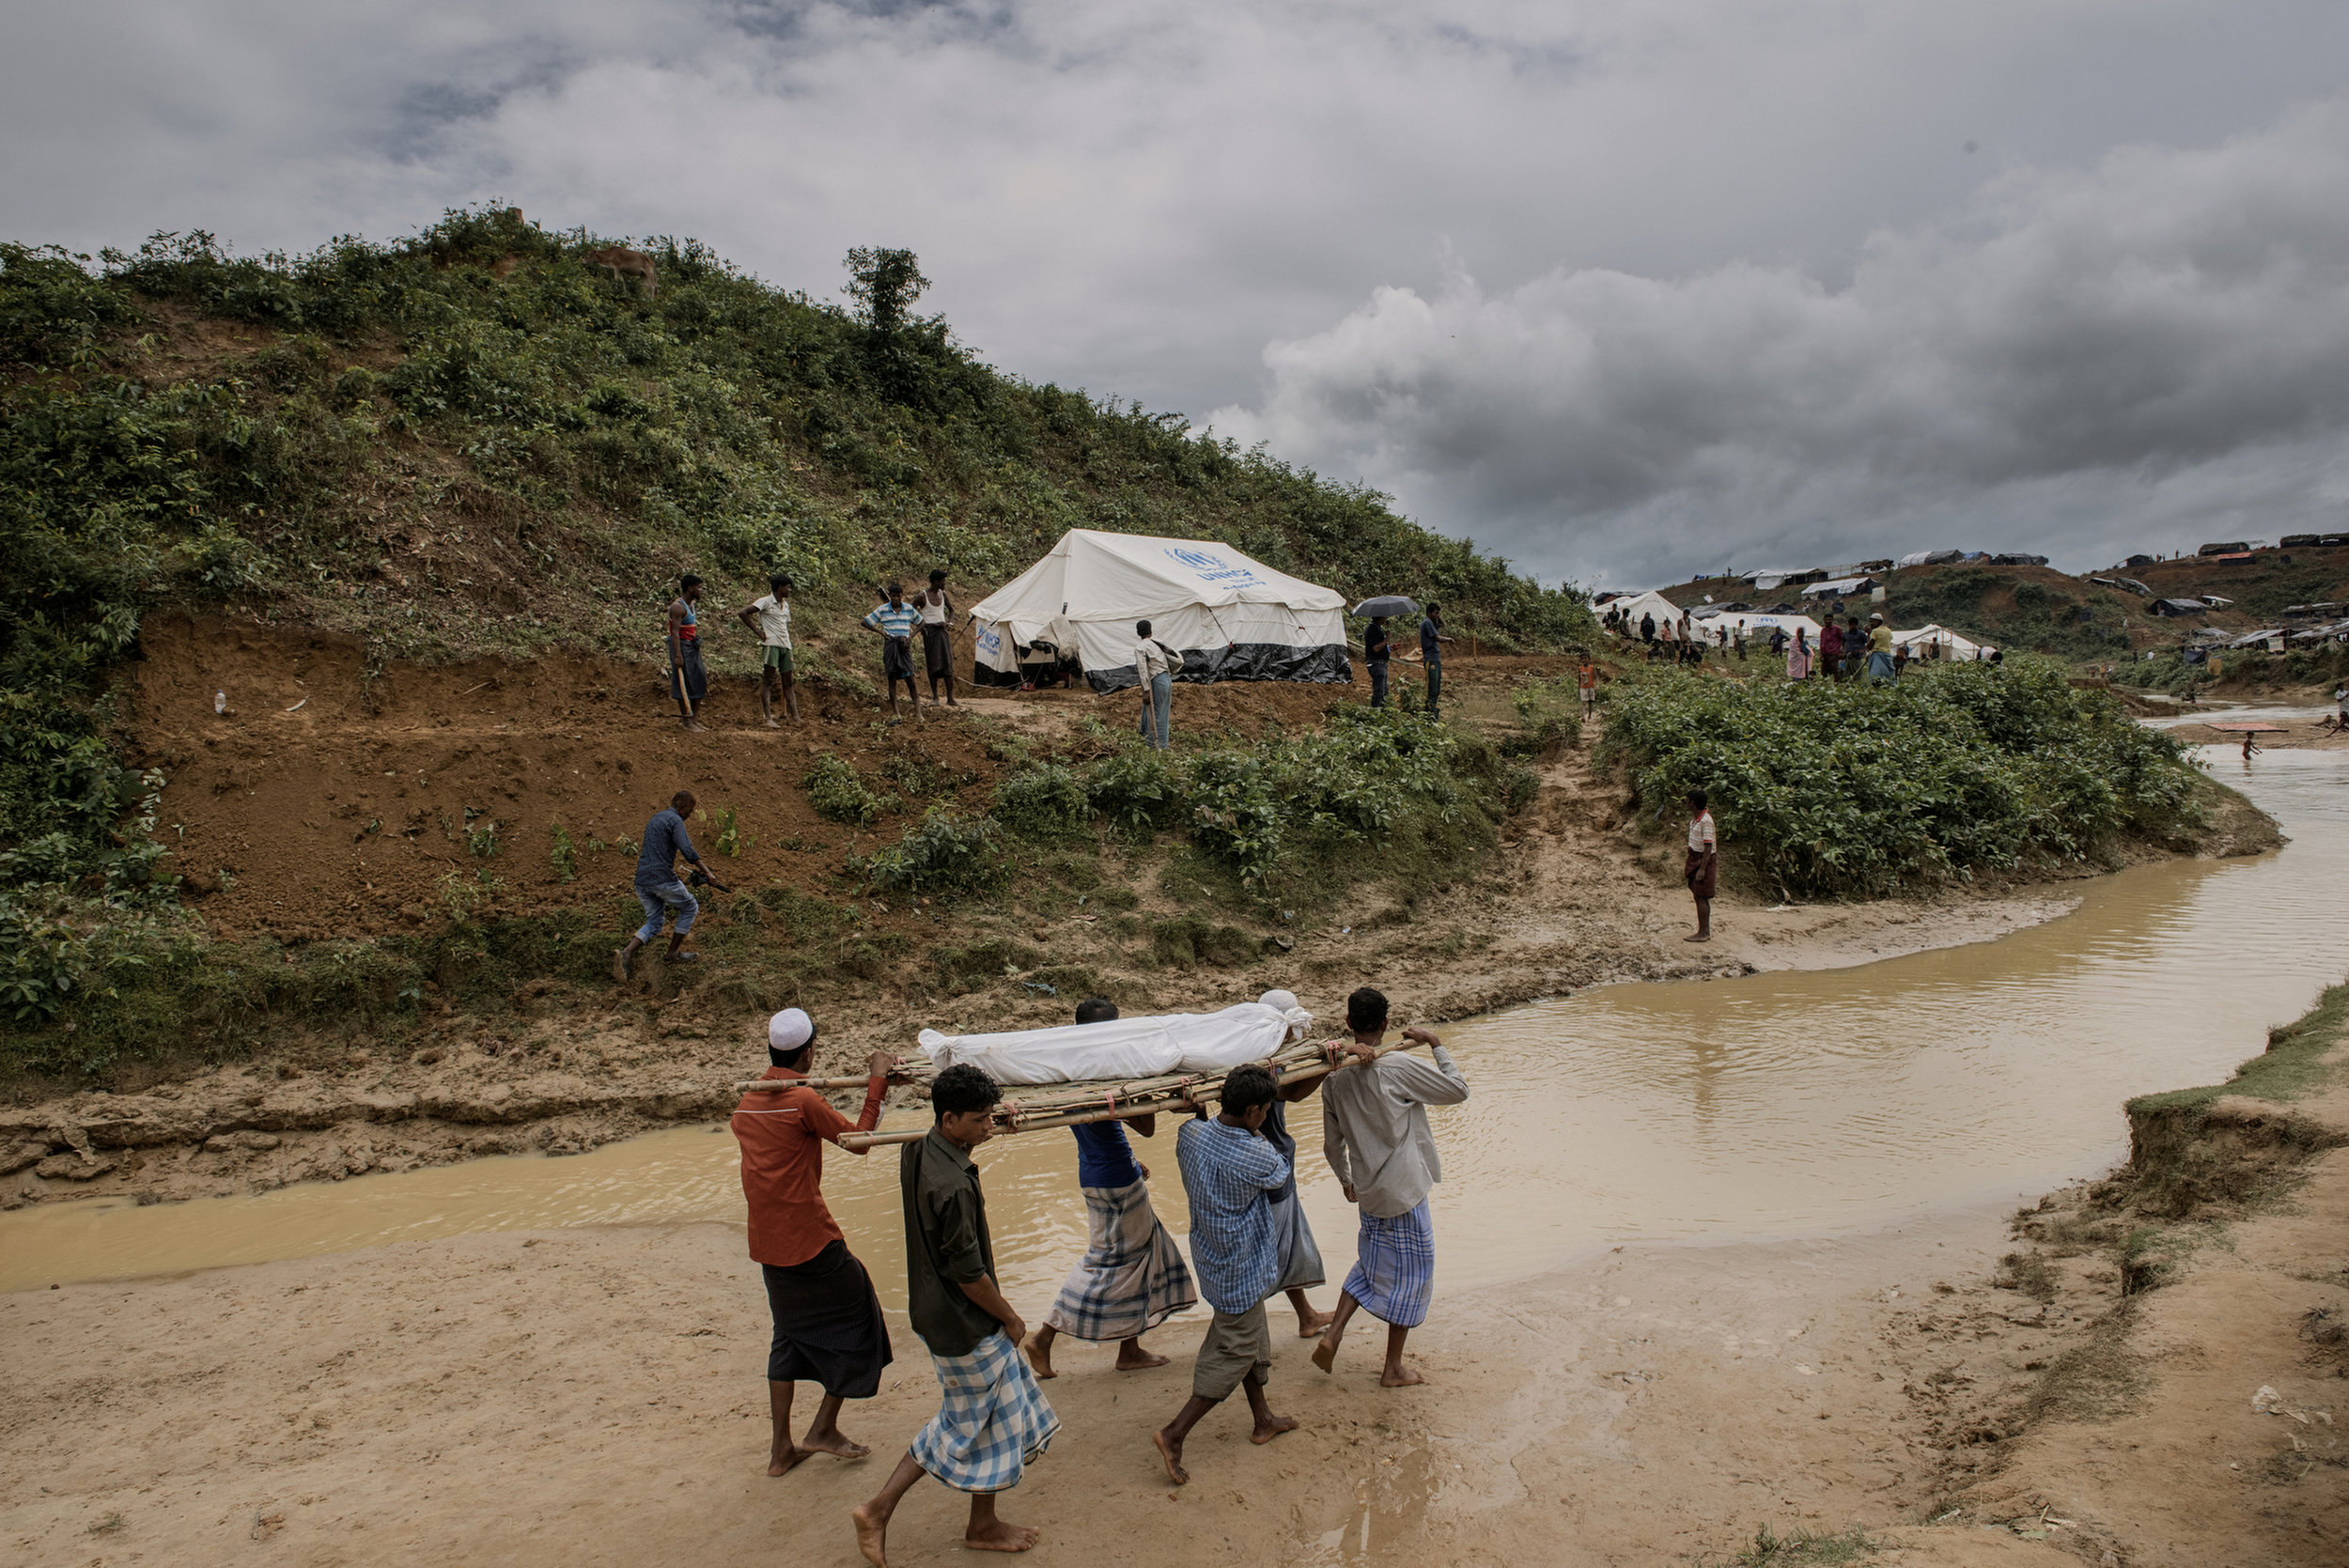 Rohingya refuges are cutting the trees and building the camps in the hilly forest, which used to wild elephants territory -  Last night around 11pm, a new Rohingya family (arrived 6 days ago in Bangladesh ) with 9 members were sleeping in extended part of Kutupalang registered camp, were attacked by a group of wild elephants, 2 people died rest of the people are in the hospital. In 2 dead people the older person was 45 years old and a baby, who was 8 months old. In this picture relatives taking the dead body of 45 years old to the makeshift cemetery.